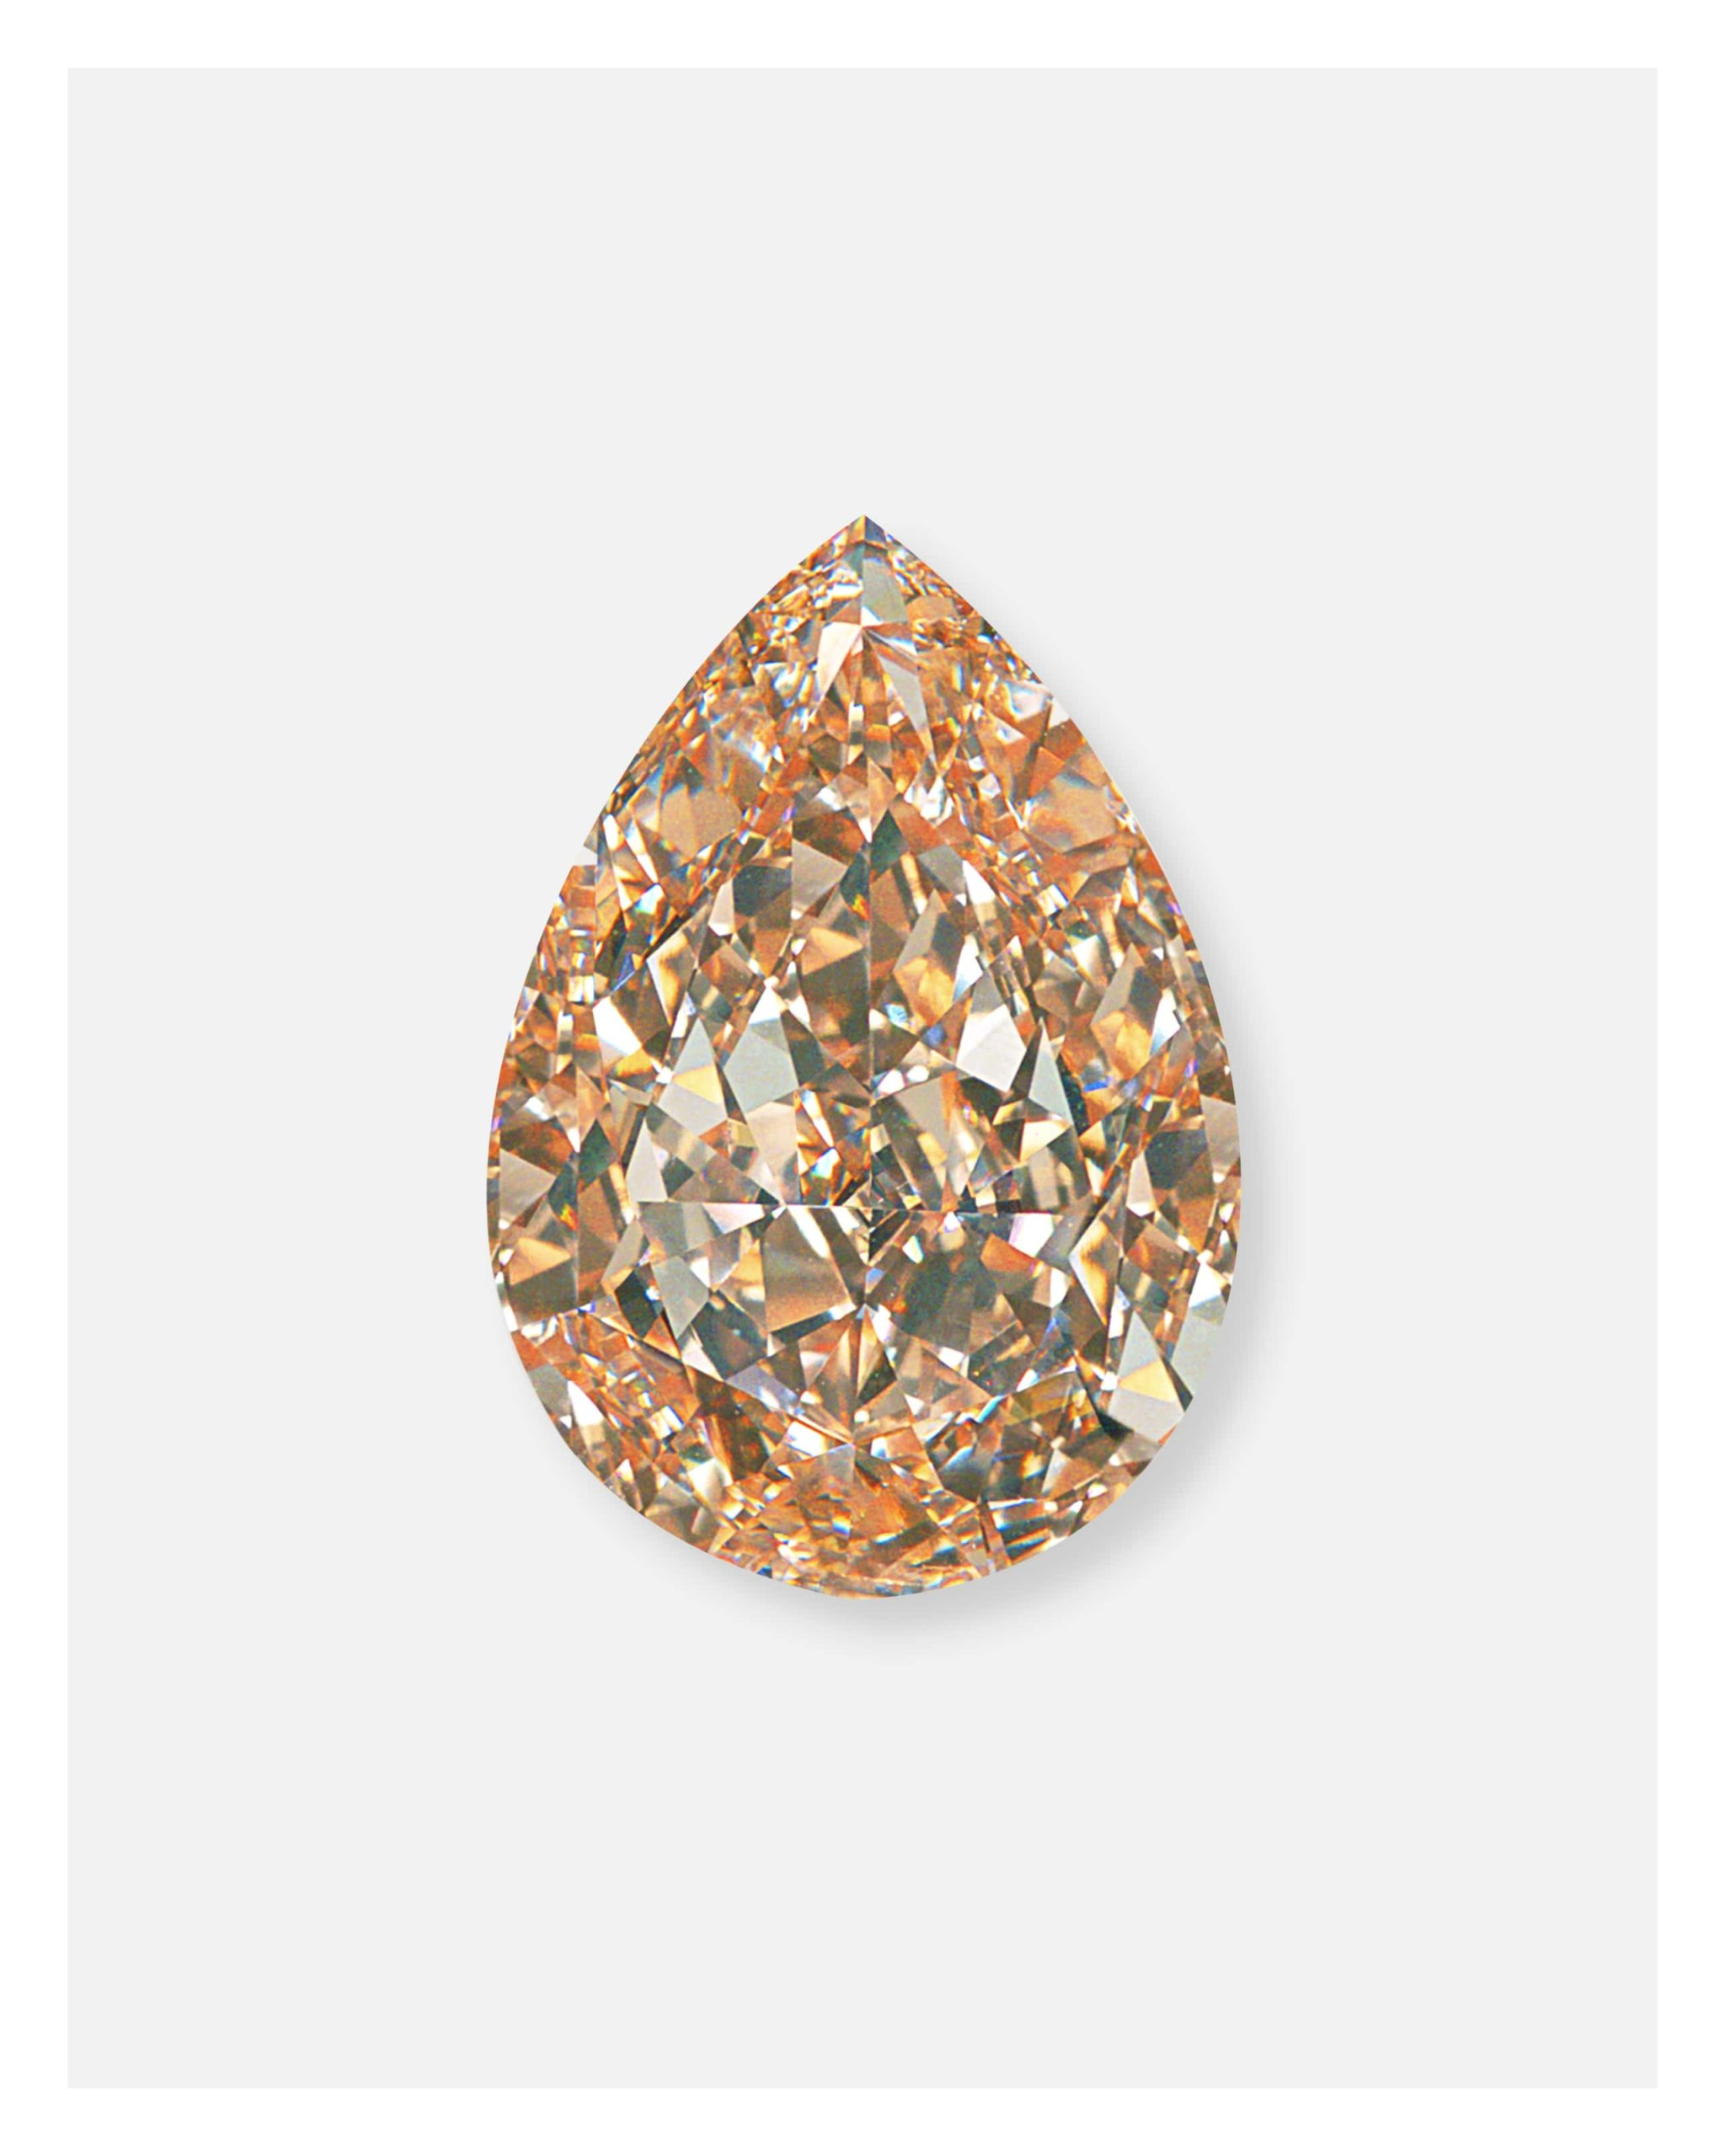 Pear shaped brown & yellow diamond from Anna Hu's diamond necklace for the ALROSA diamond auction